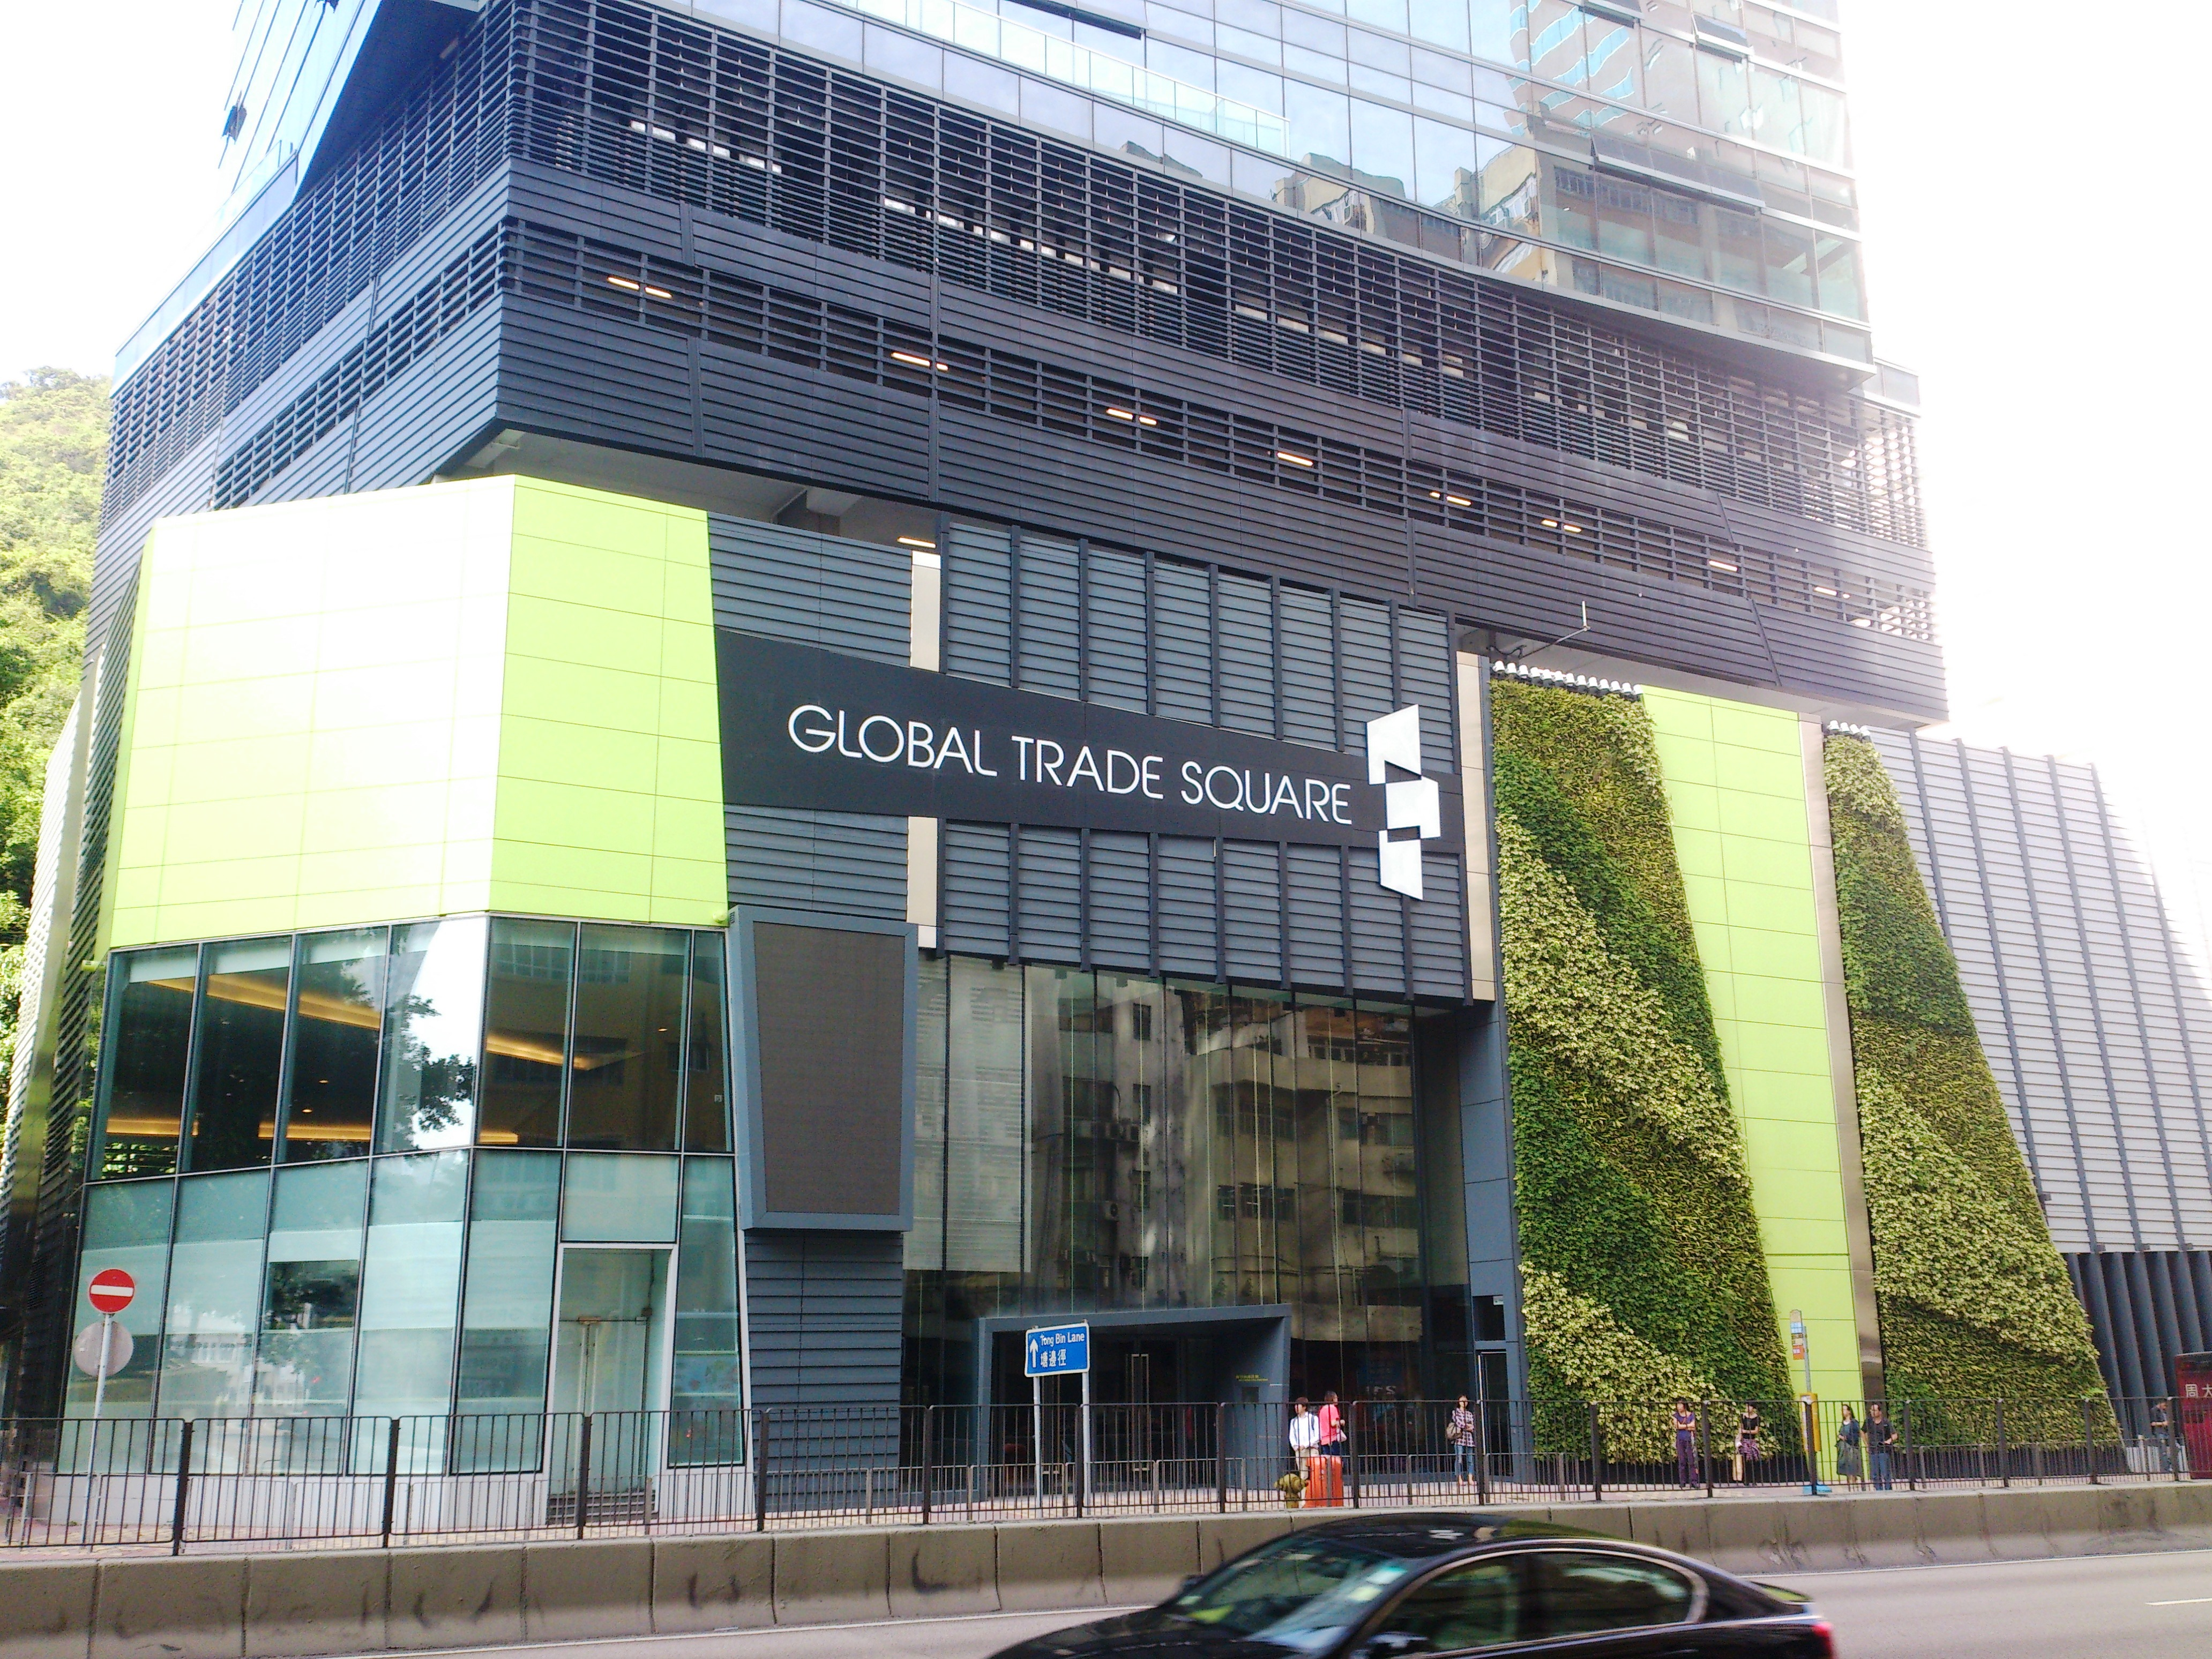 Global Trade Square